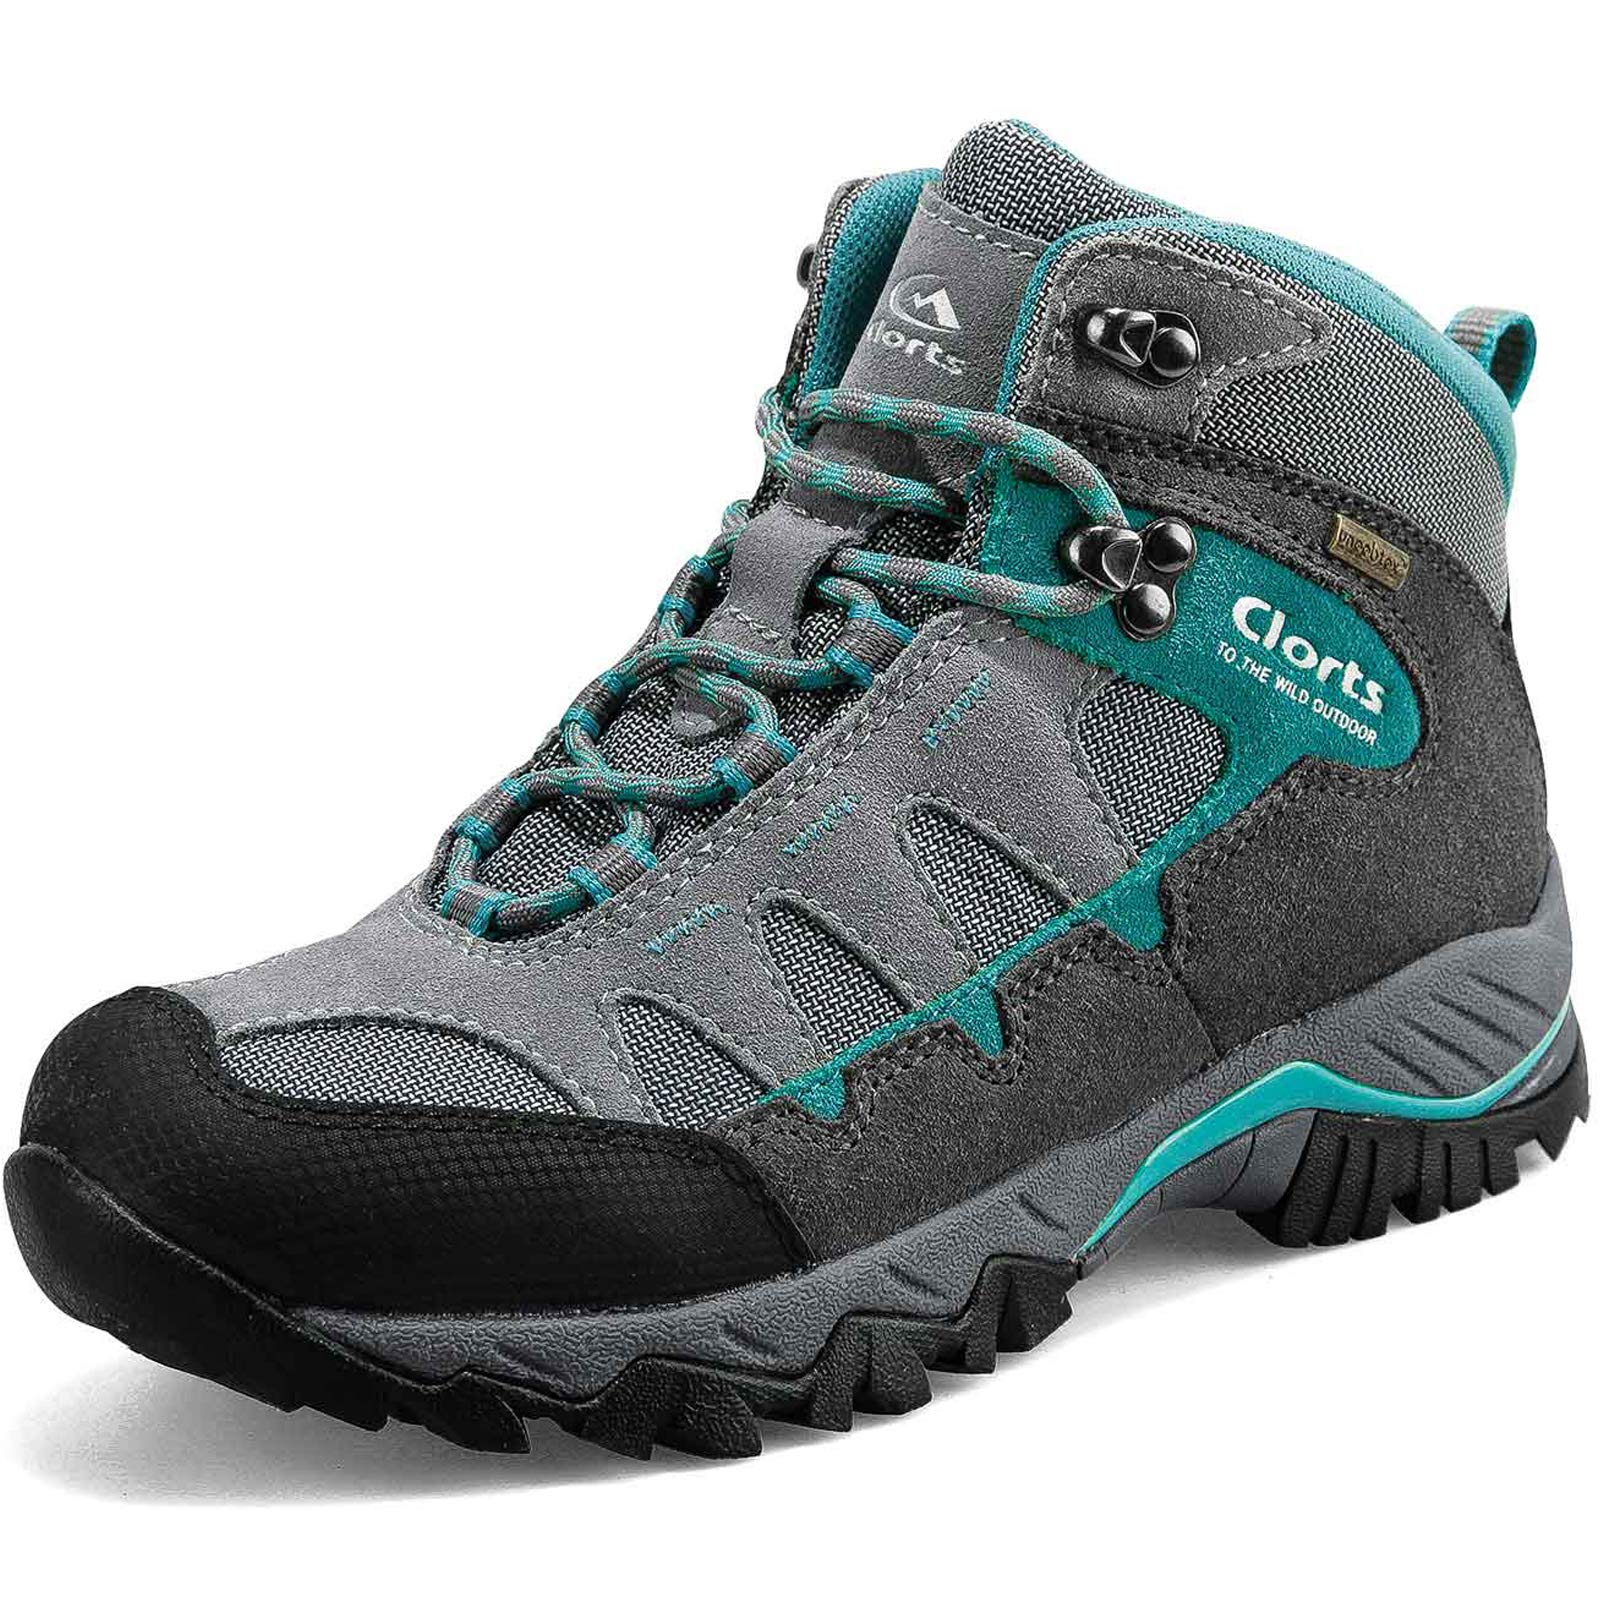 Clorts Women's Pioneer Hiking Boots Waterproof Suede Leather Lightweight Hiking Shoes Grey/Turquoise US Women Size 7.5 Medium Width by Clorts